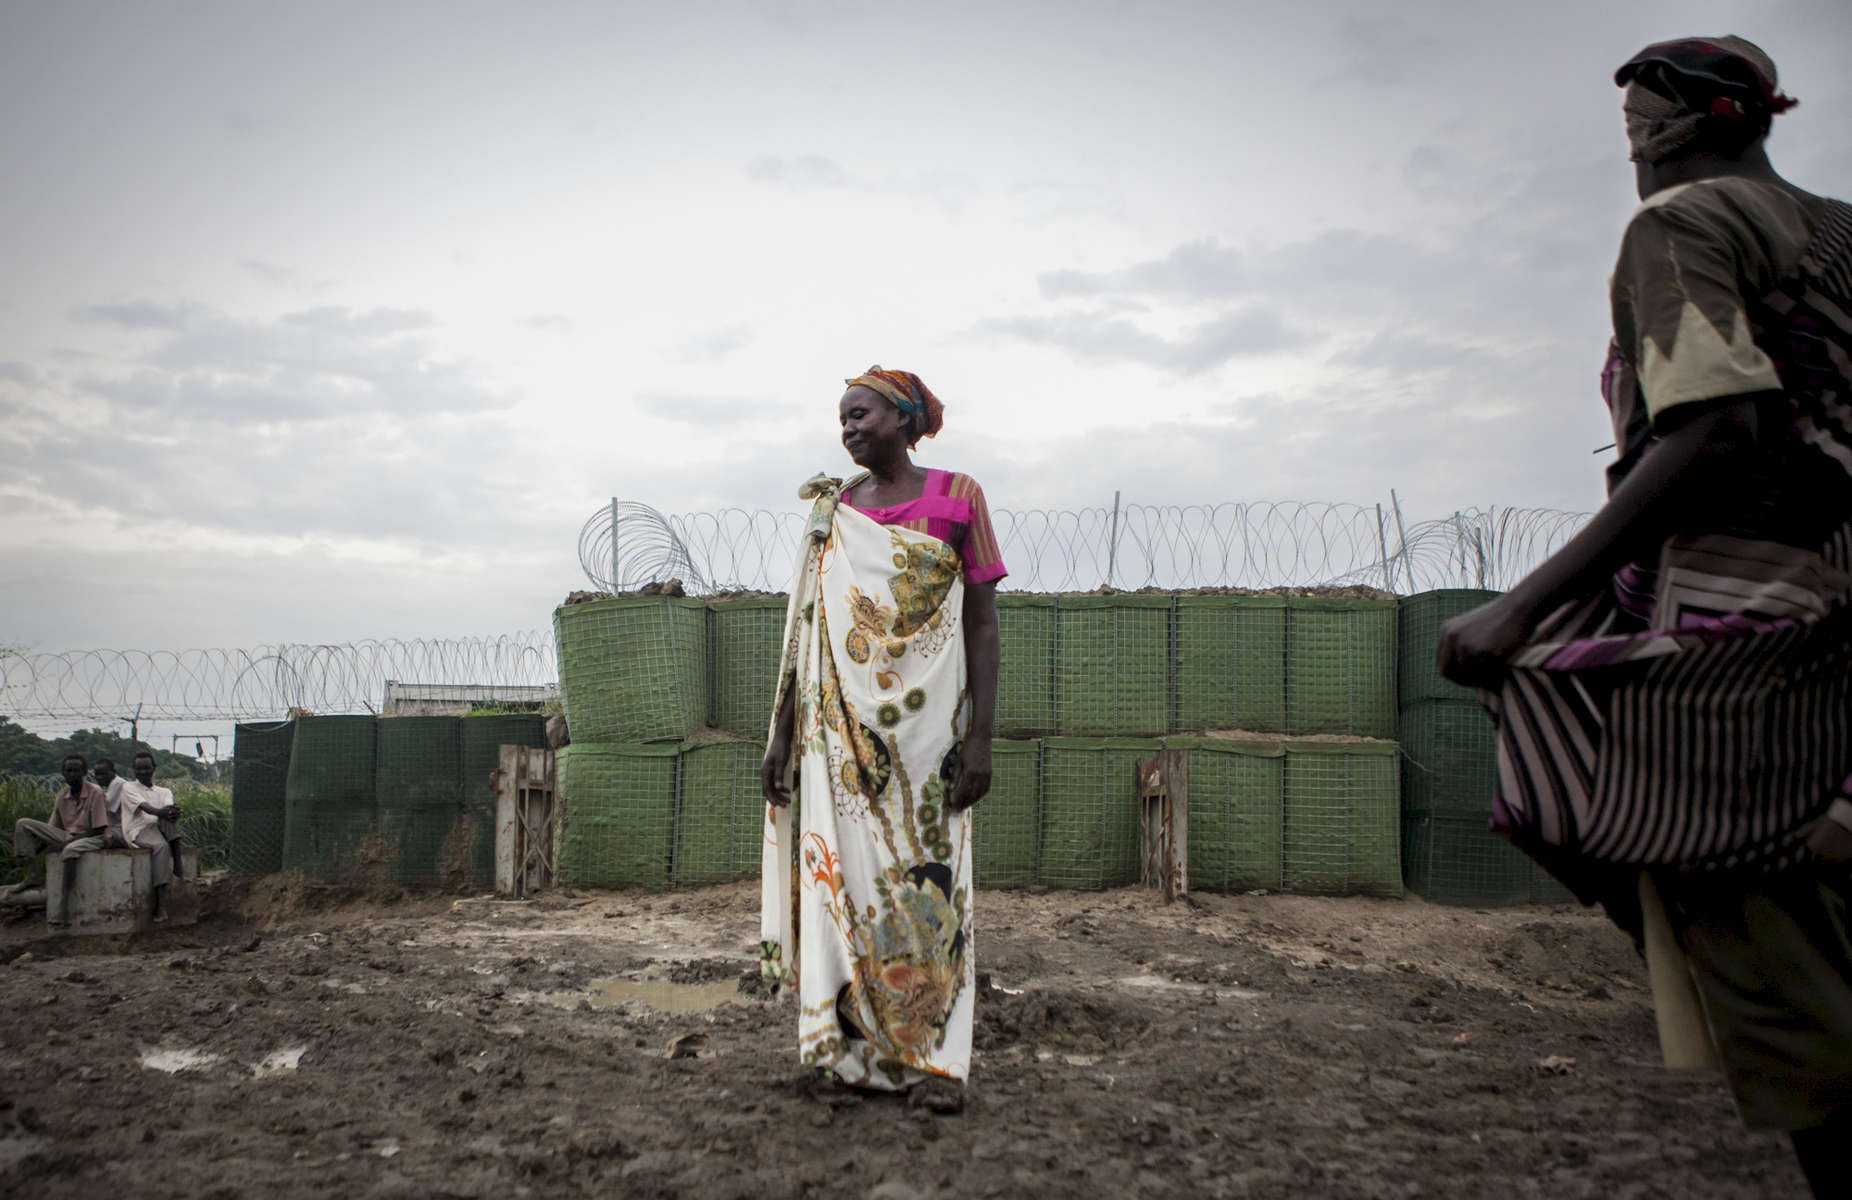 Rachael Mayik stands outside a now barricaded Charlie Gate in the Protection of Civilians (POC) site at the United Nations Mission in South Sudan (UNMISS) compound in Malakal, South Sudan on Saturday, July 16, 2016. Charlie Gate is the site where thousands of people gathered during the violence that erupted in February of this year. The UN came under scrutiny due to the slow response of the peacekeepers to protect the civilians during the two day ordeal. During the violence, thousands demanded entrance into the UNMISS base at Charlie gate, seeking safety, but the opening of the gate was delayed for protection of the UN compound. The Malakal POC site houses over 32,000 displaced people mainly from the Shilluk and Nuer tribes. In February of this year, members of the Dinka tribe, who resided in the camp at the time, carried out a coordinated attack within the site leading to the destruction of hundreds of shelters and many deaths. Since then, most members of the Dinka tribe have fled to Malakal town where they occupy the homes of those still displaced.